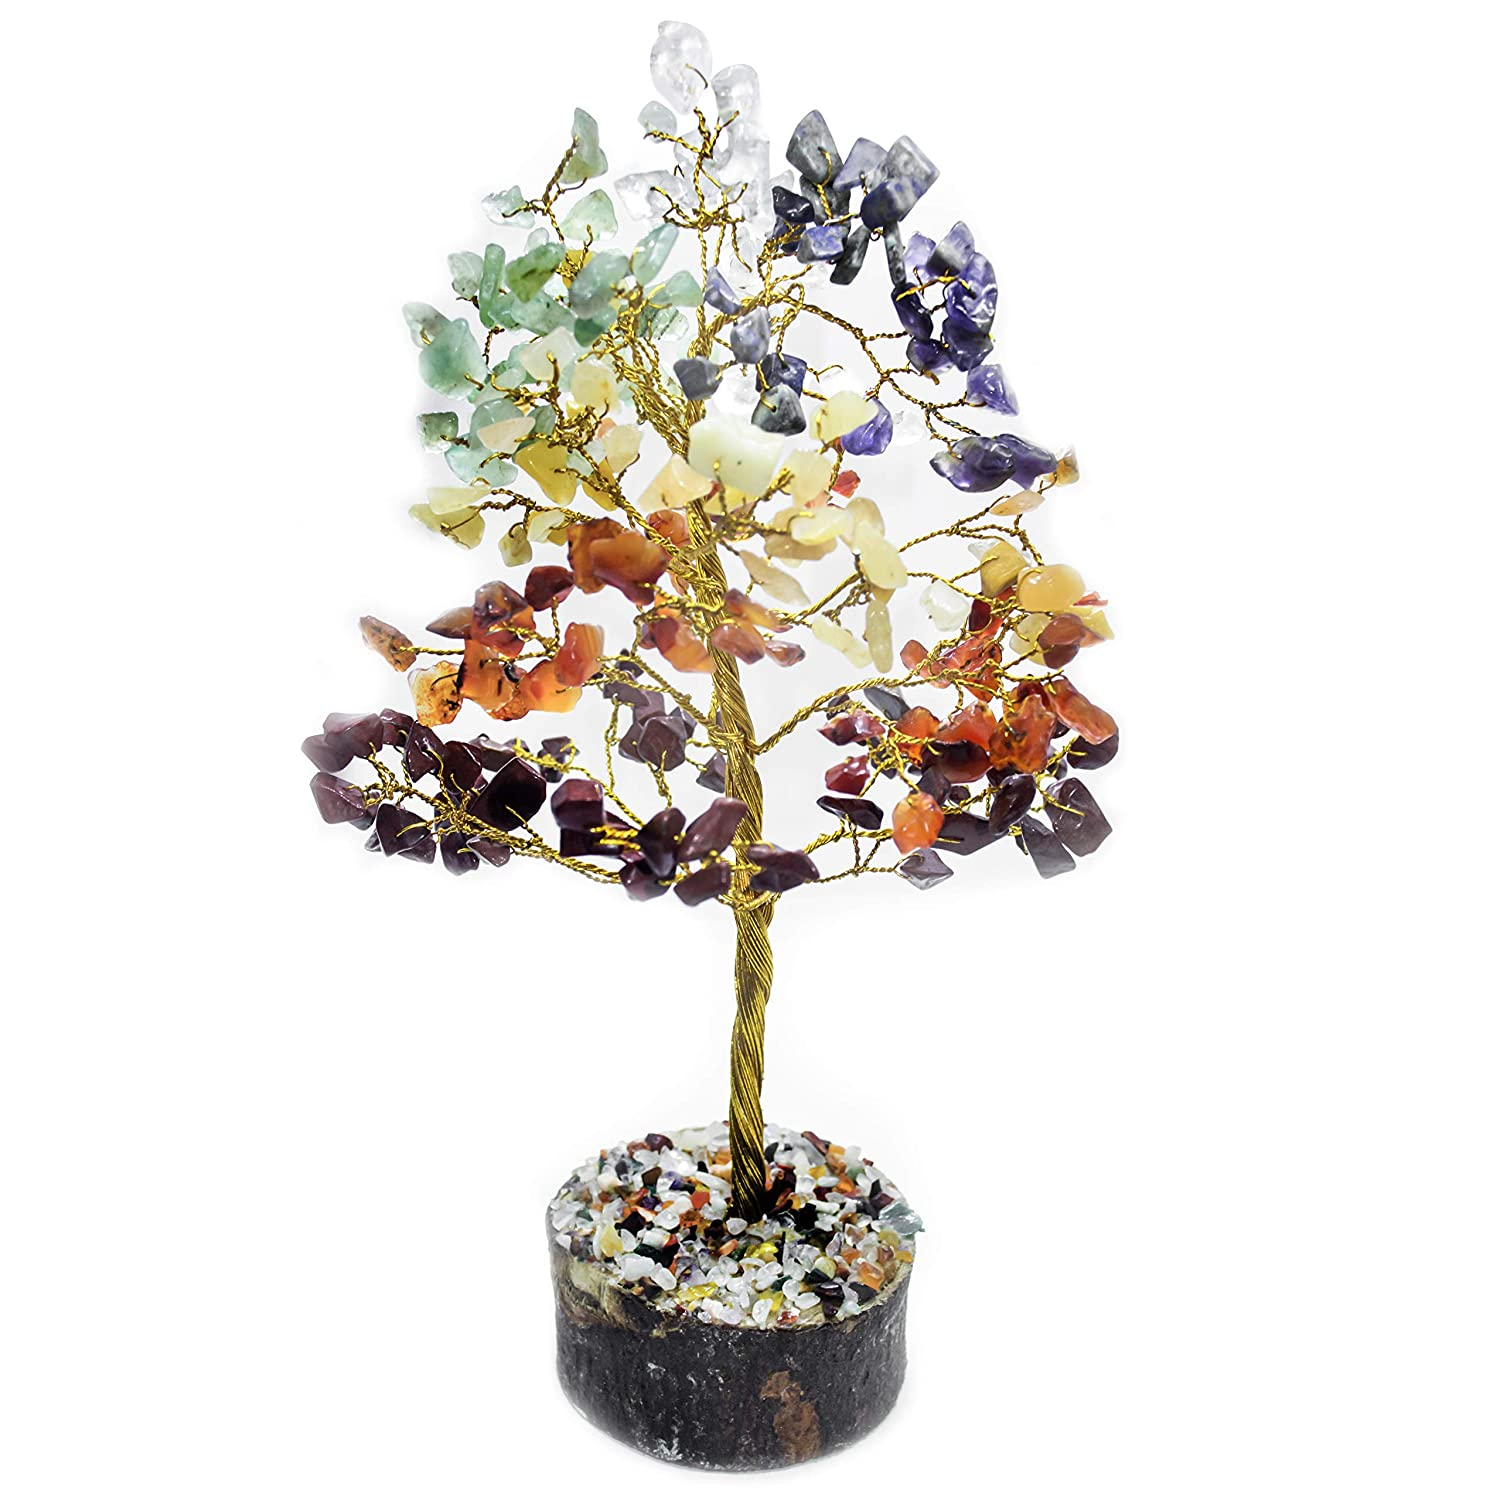 CROCON Seven Chakra Natural Healing Gemstone Crystal Bonsai Fortune Money Tree for Good Luck, Wealth & Prosperity-Home Office Table Decor Spiritual Gift (Golden Wire Branches) Size 10 inches